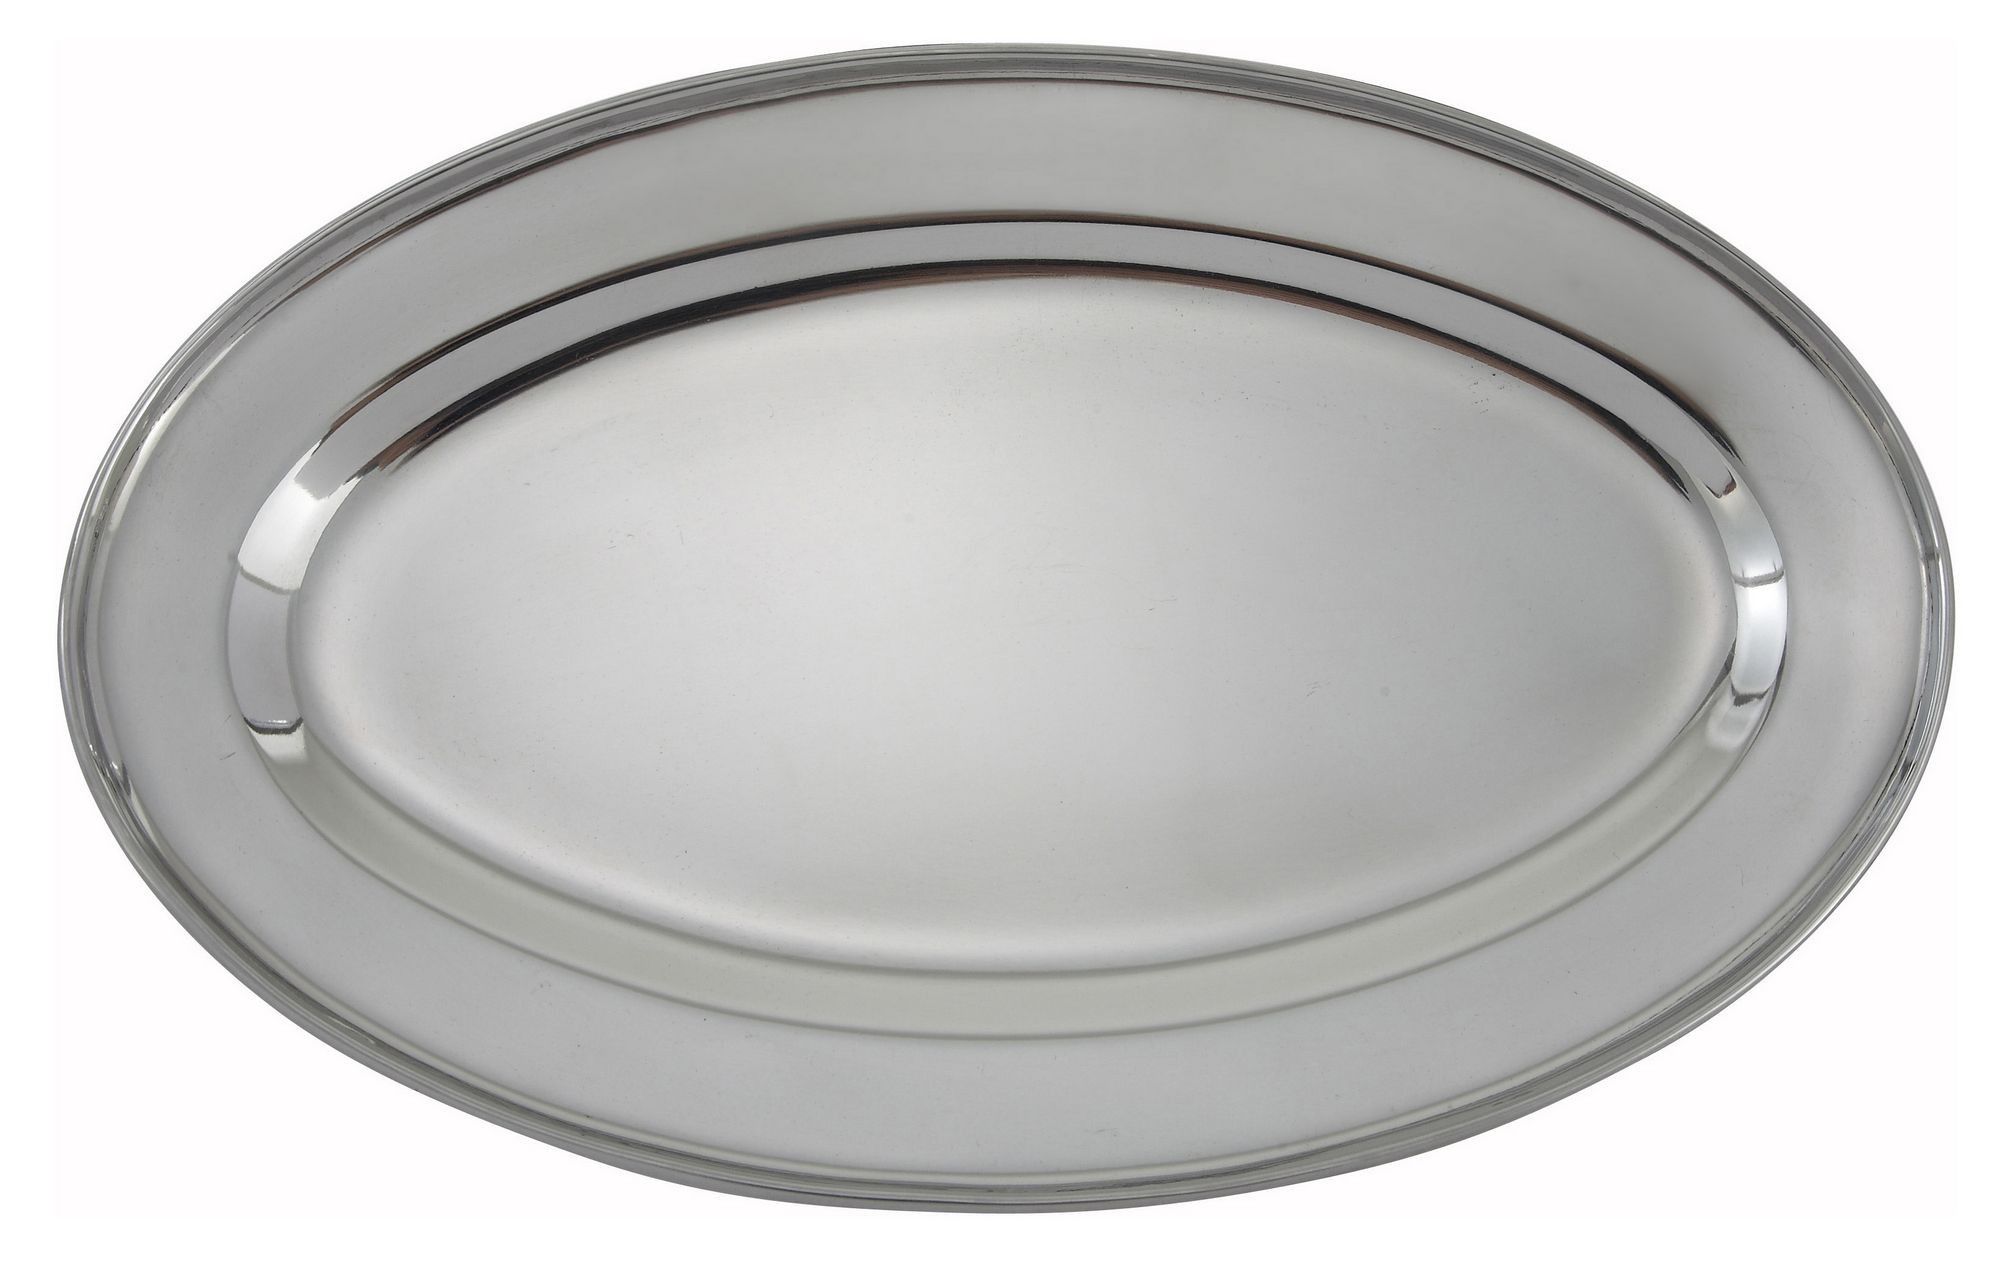 "Winco OPL-14 Stainless Steel Oval Platter - 14"" x 8-3/4"""